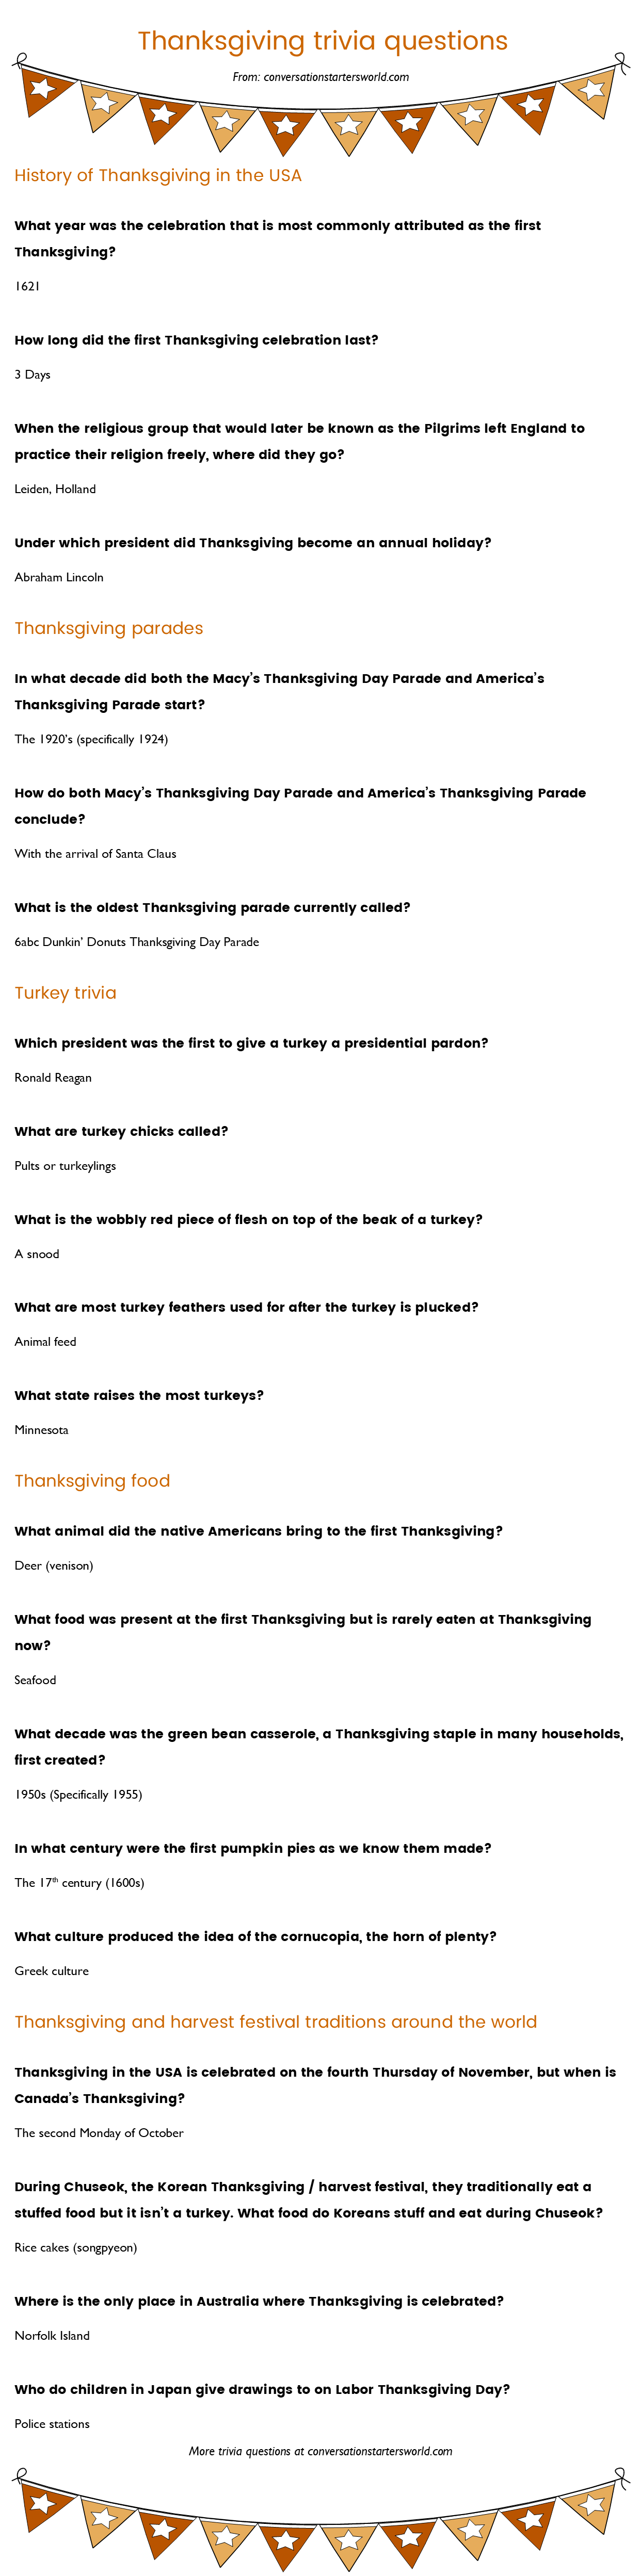 21 Thanksgiving trivia questions most people don't know the